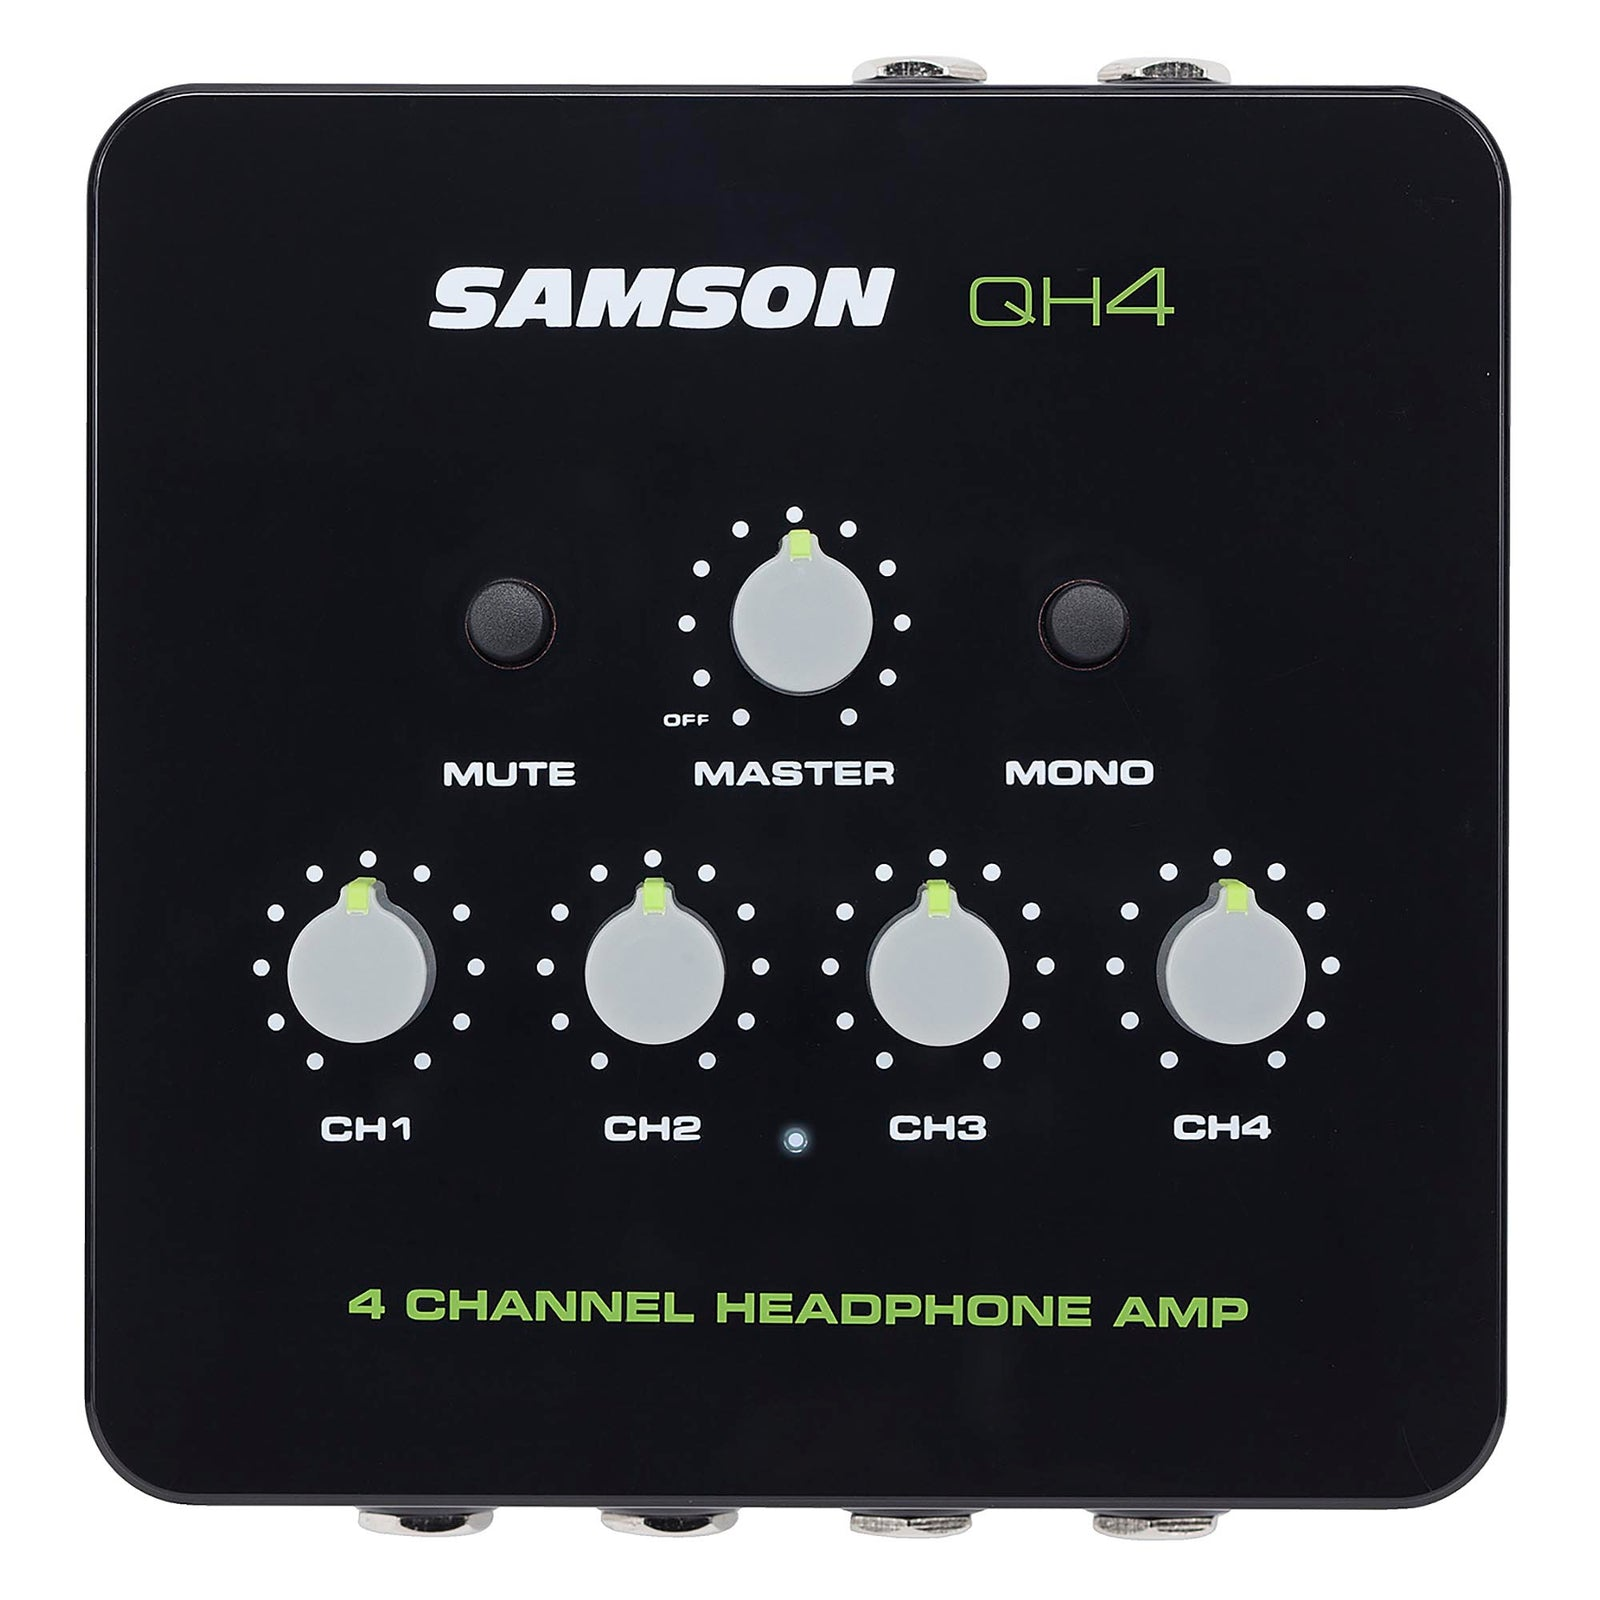 Samson 4CH Headphone Amp